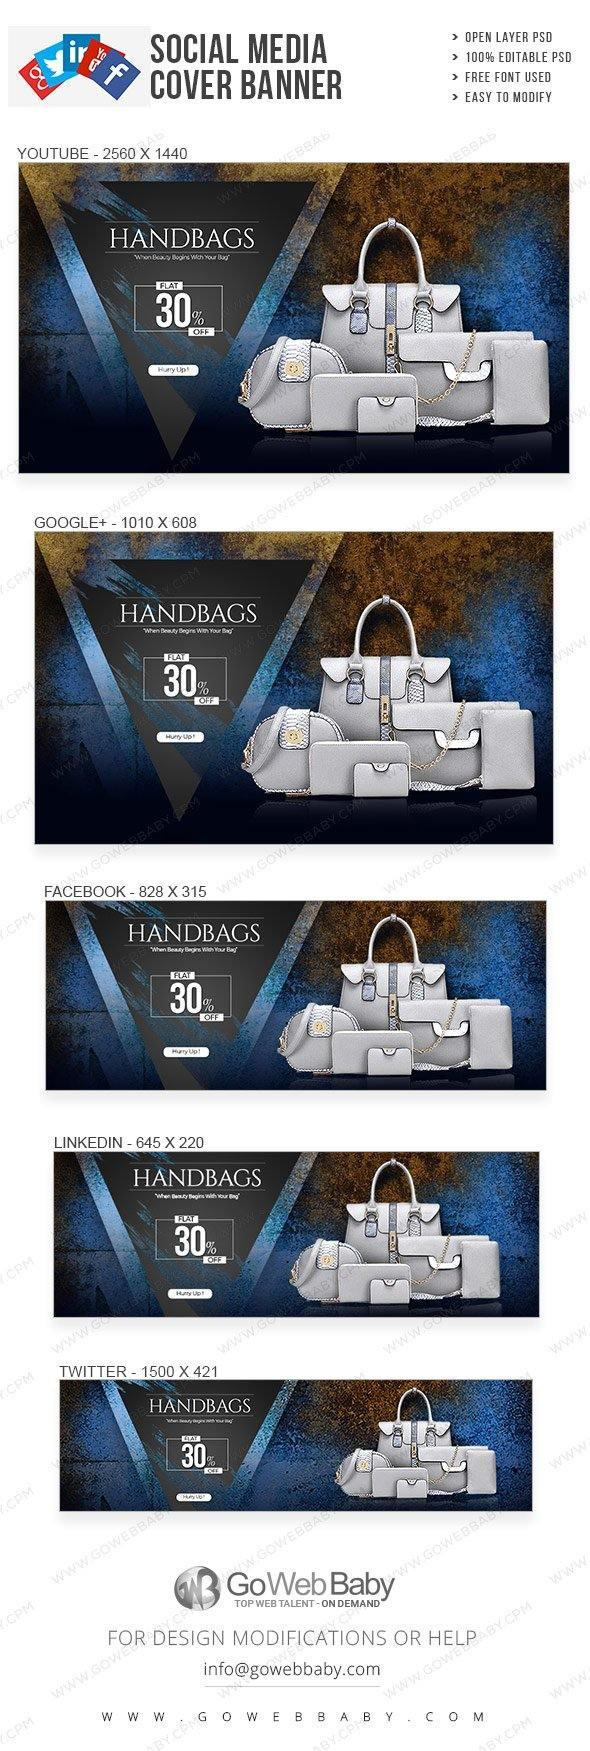 Social Media Cover Banner - Fashion Handbag Catalogue For Website Marketing